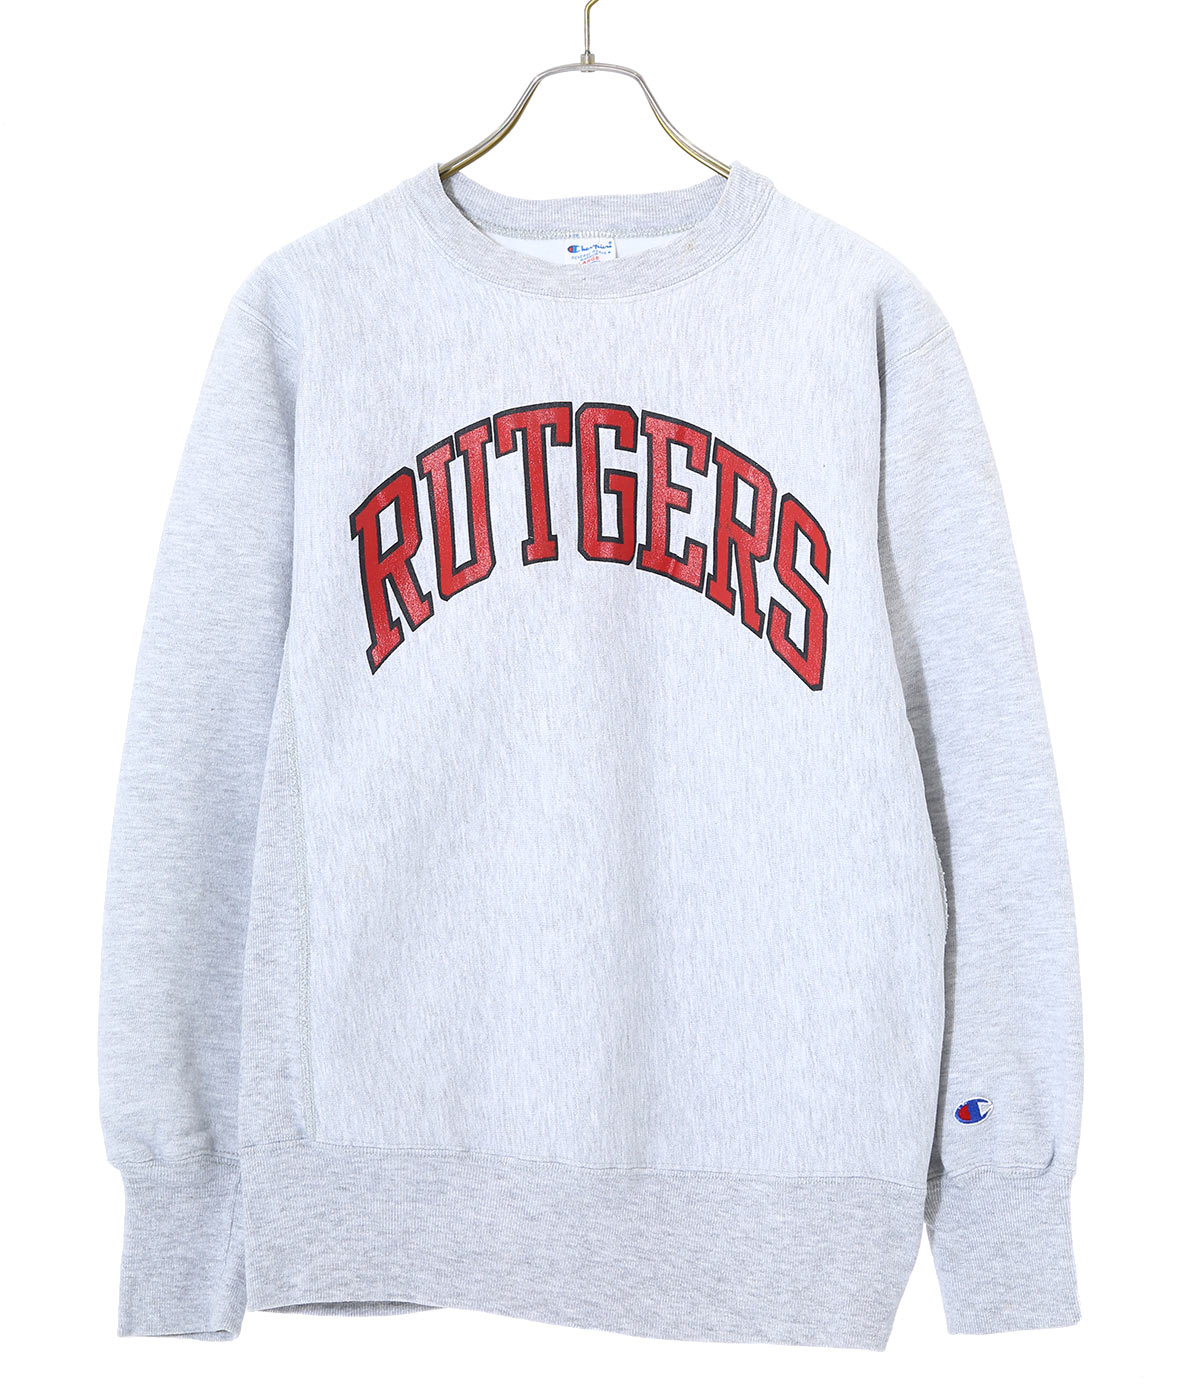 【USED】80's Champion RUTGERS SW